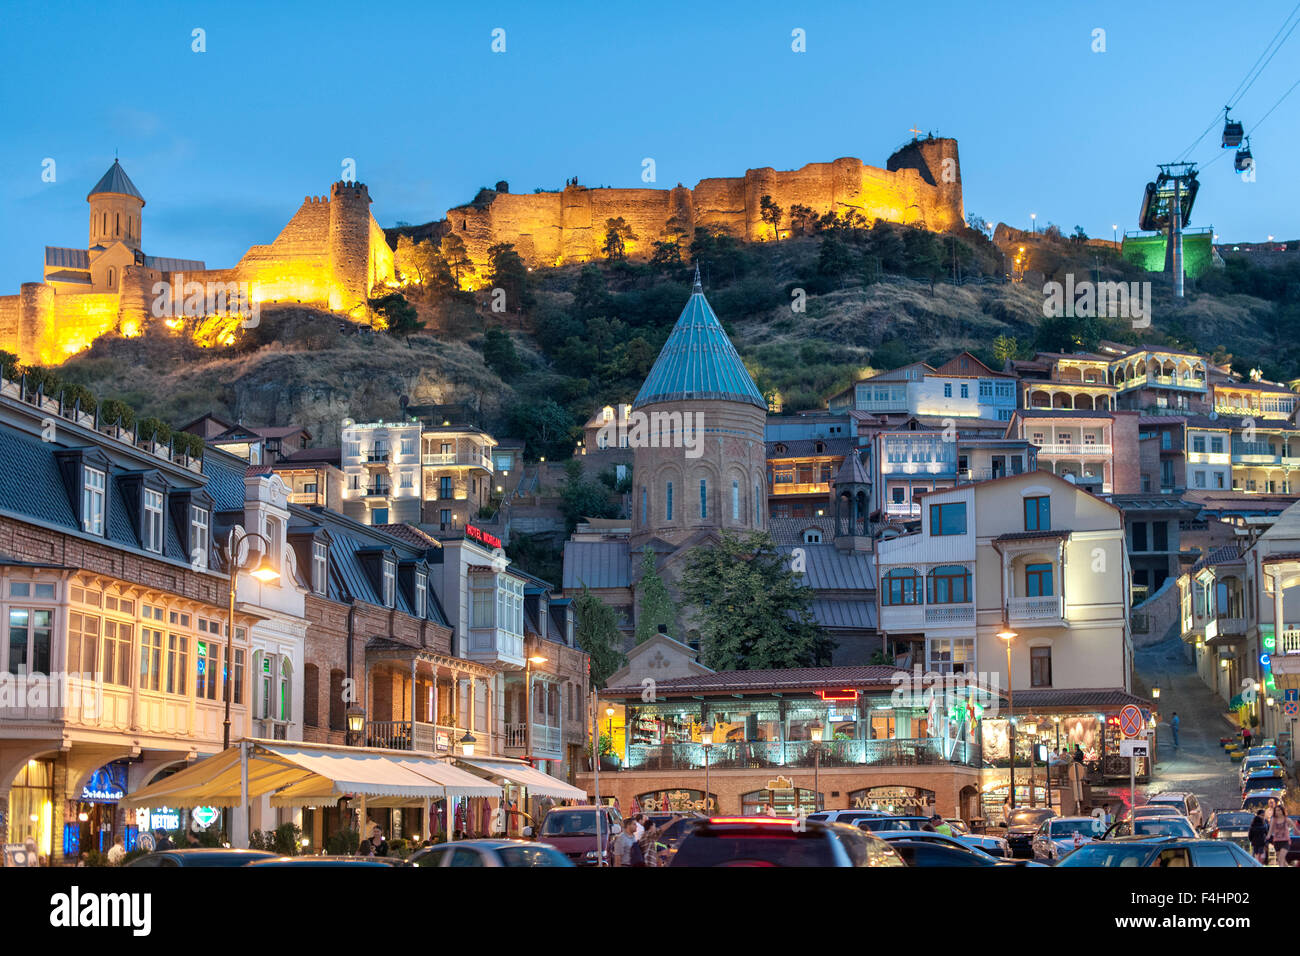 Dusk view of Narikala fortress and the old town in Tbilisi, the capital of Georgia. - Stock Image